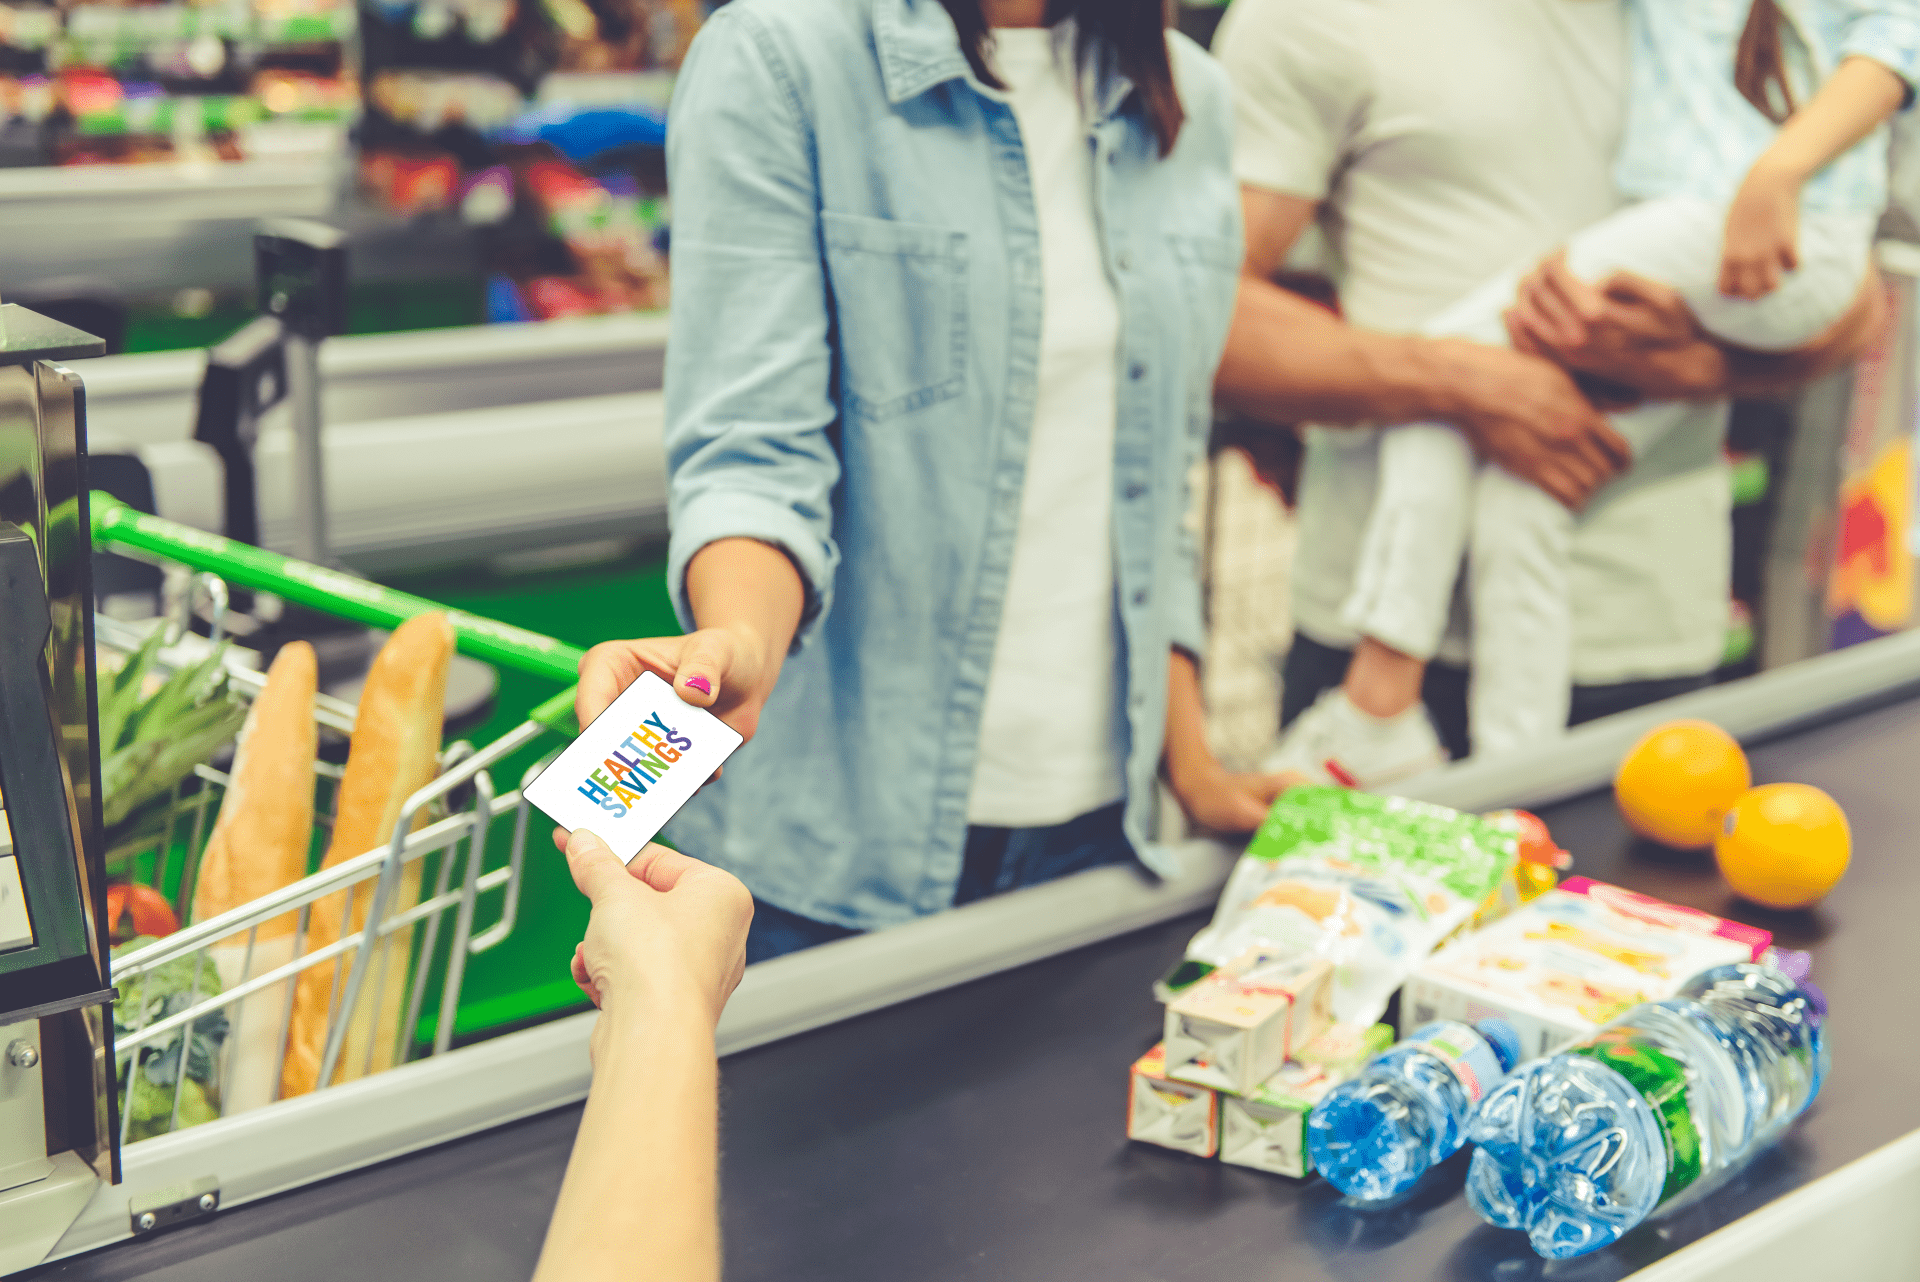 Family shopping for food items with benefit app